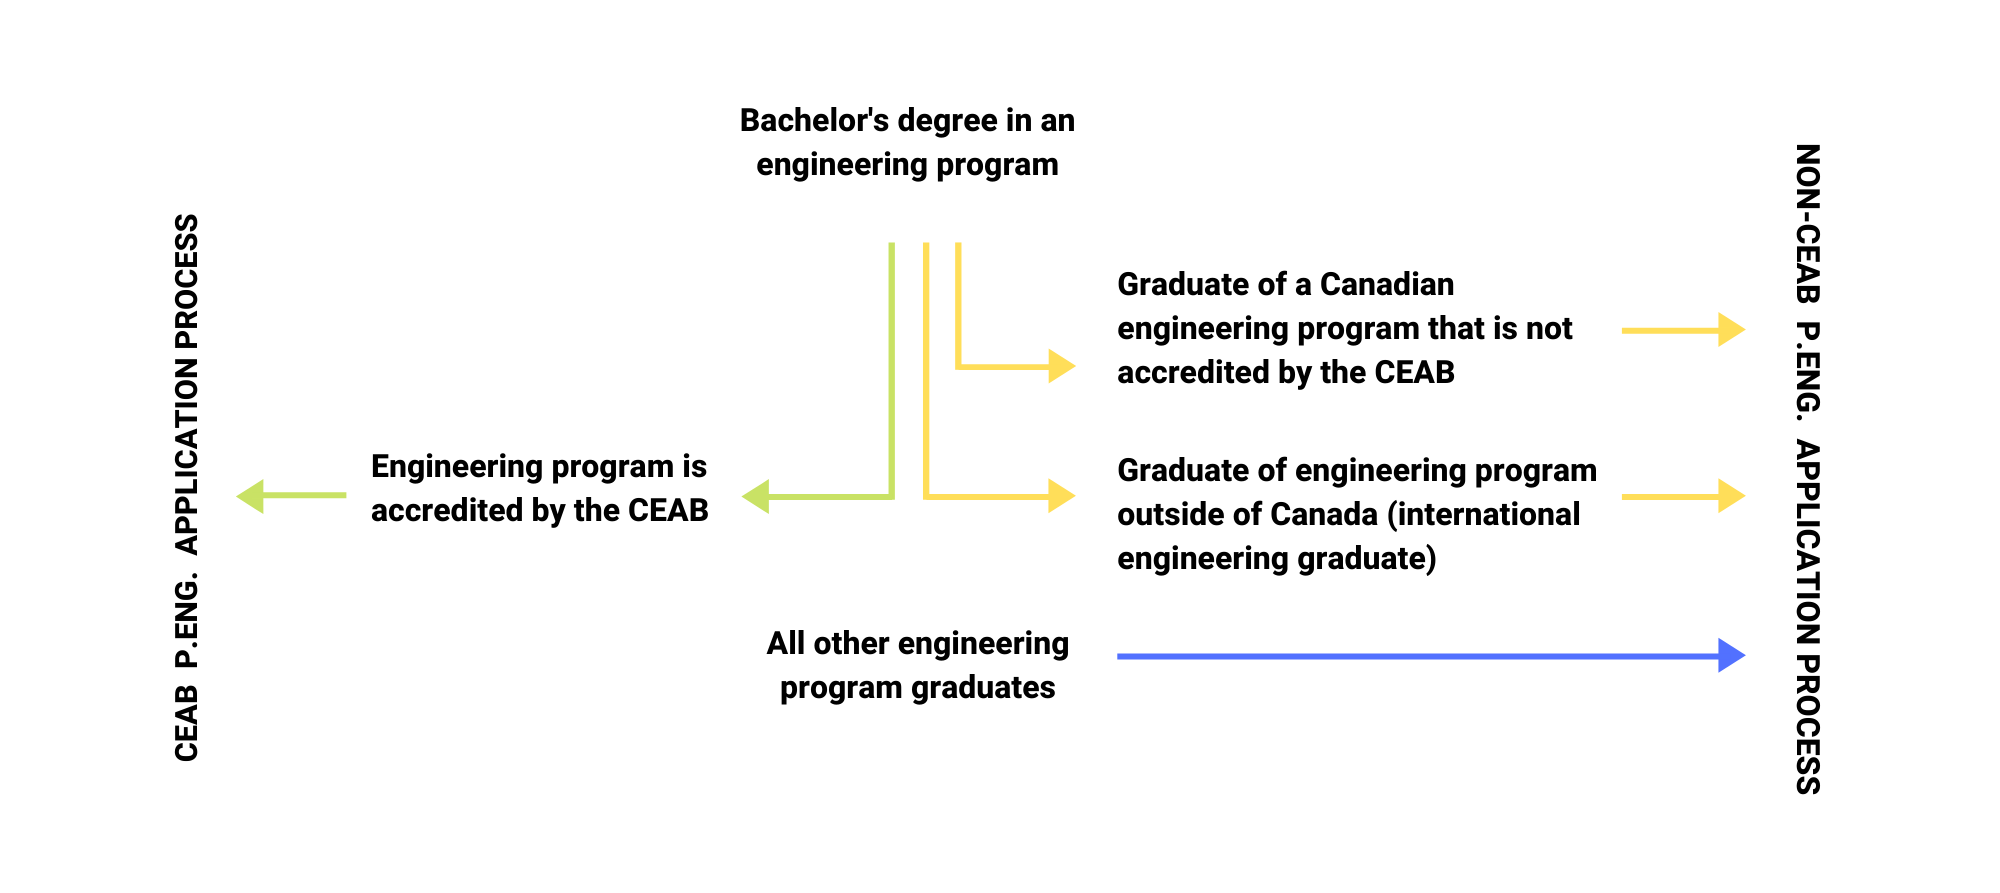 Diagram of CEAB-Accredited Engineering Program and Non-CEAB Accredited Engineering Program